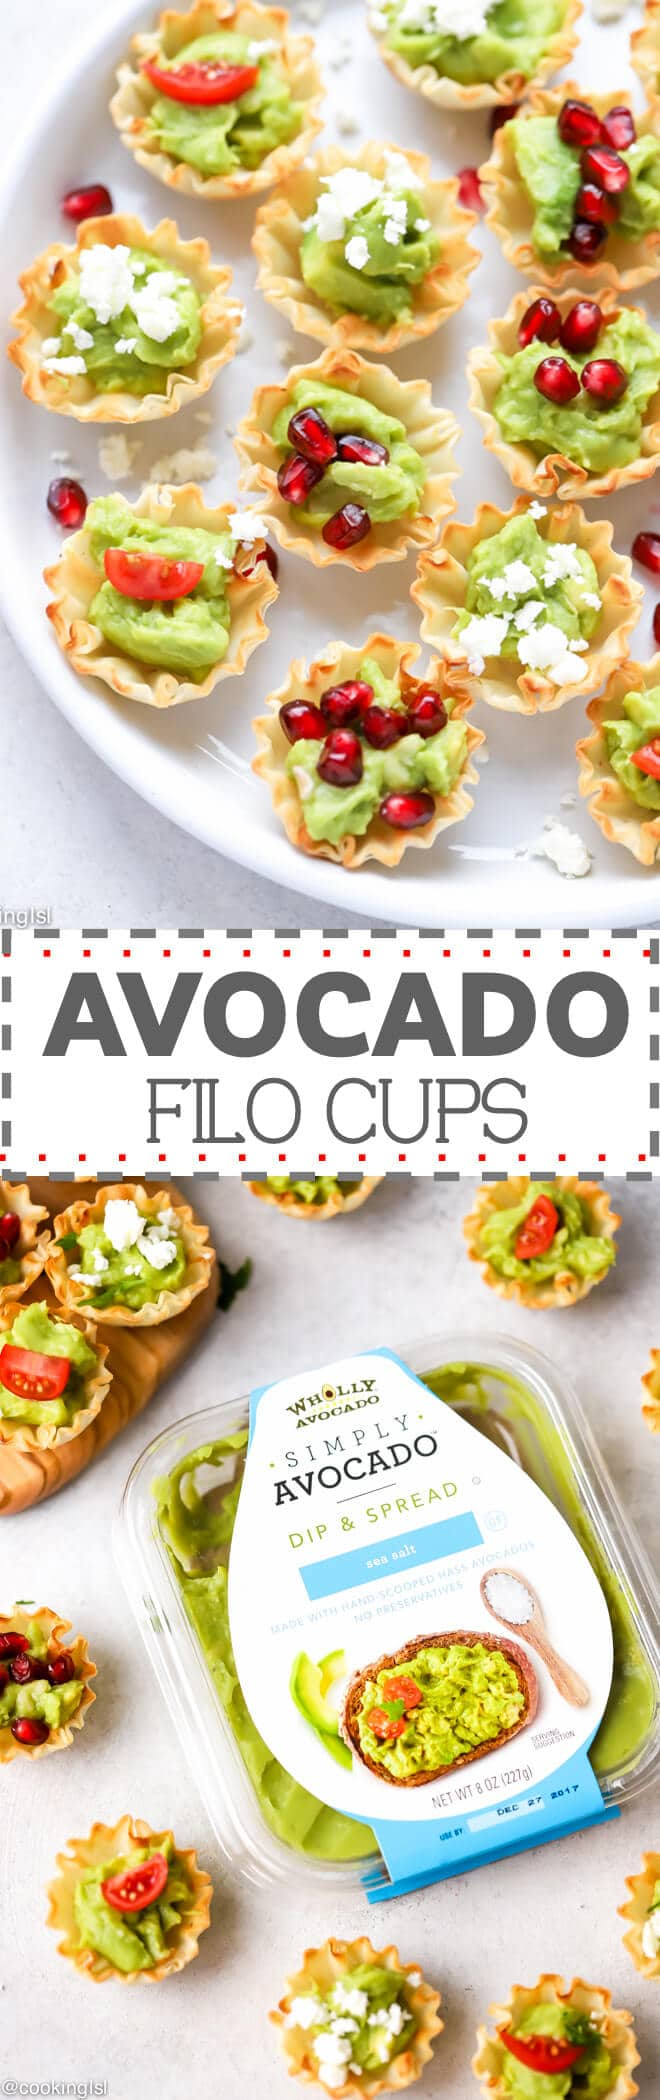 Avocado Filo Cups - quick and easy to make snack, which is also great for a party appetizer. Made with two simple ingredients -  store bought mini filo dough cups and SIMPLY AVOCADO™ Sea Salt, plus topping, that is totally optional. Creative and effortless mini bites, that are nutritious, festive and delicious.